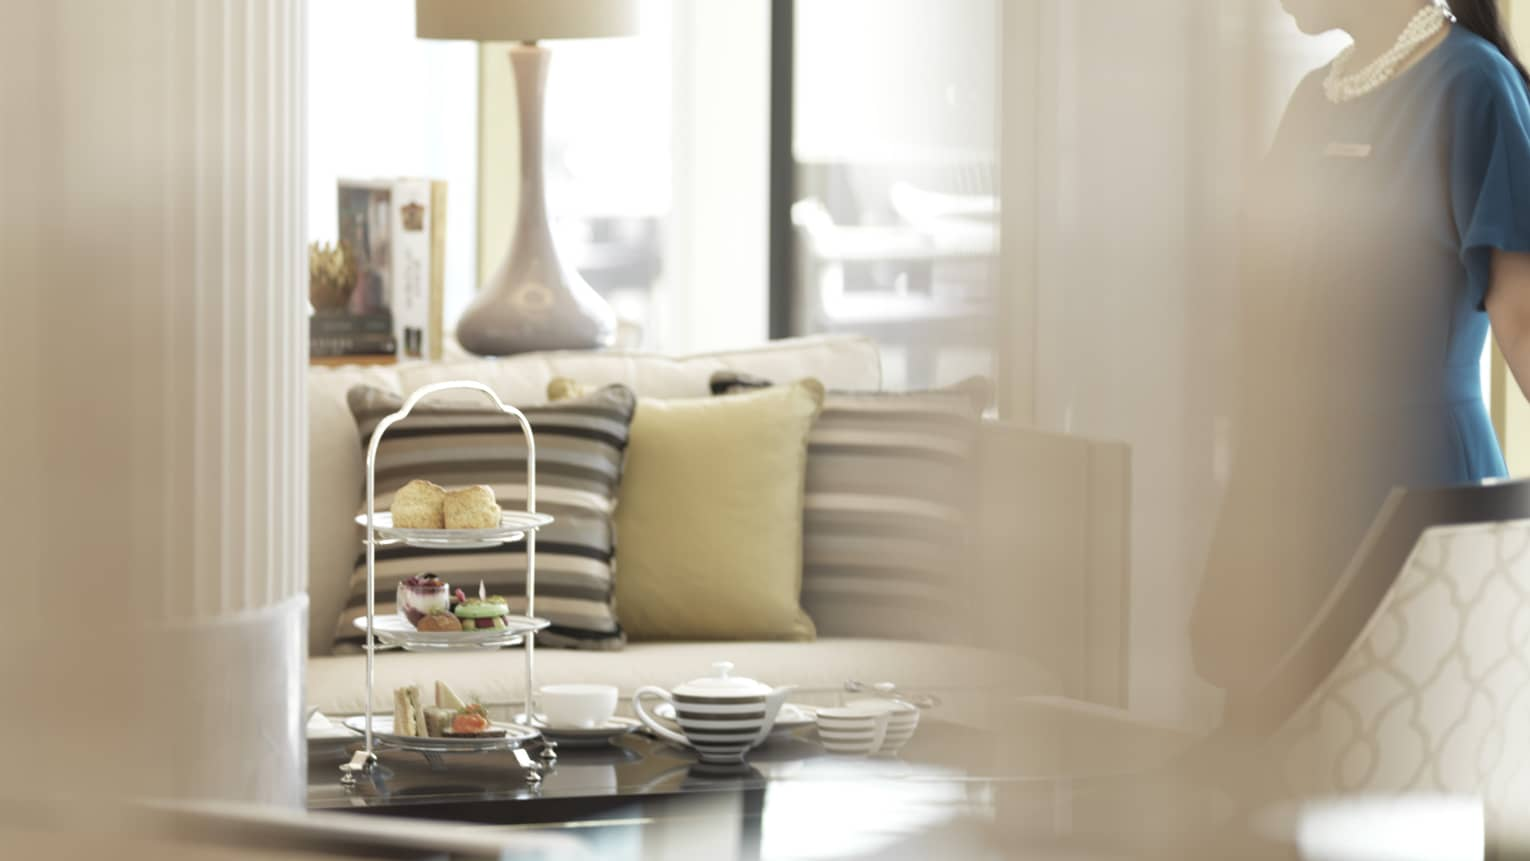 A four seasons staff sets the table for Al Meylas Afternoon Tea in a room with full of the warmth of natural light